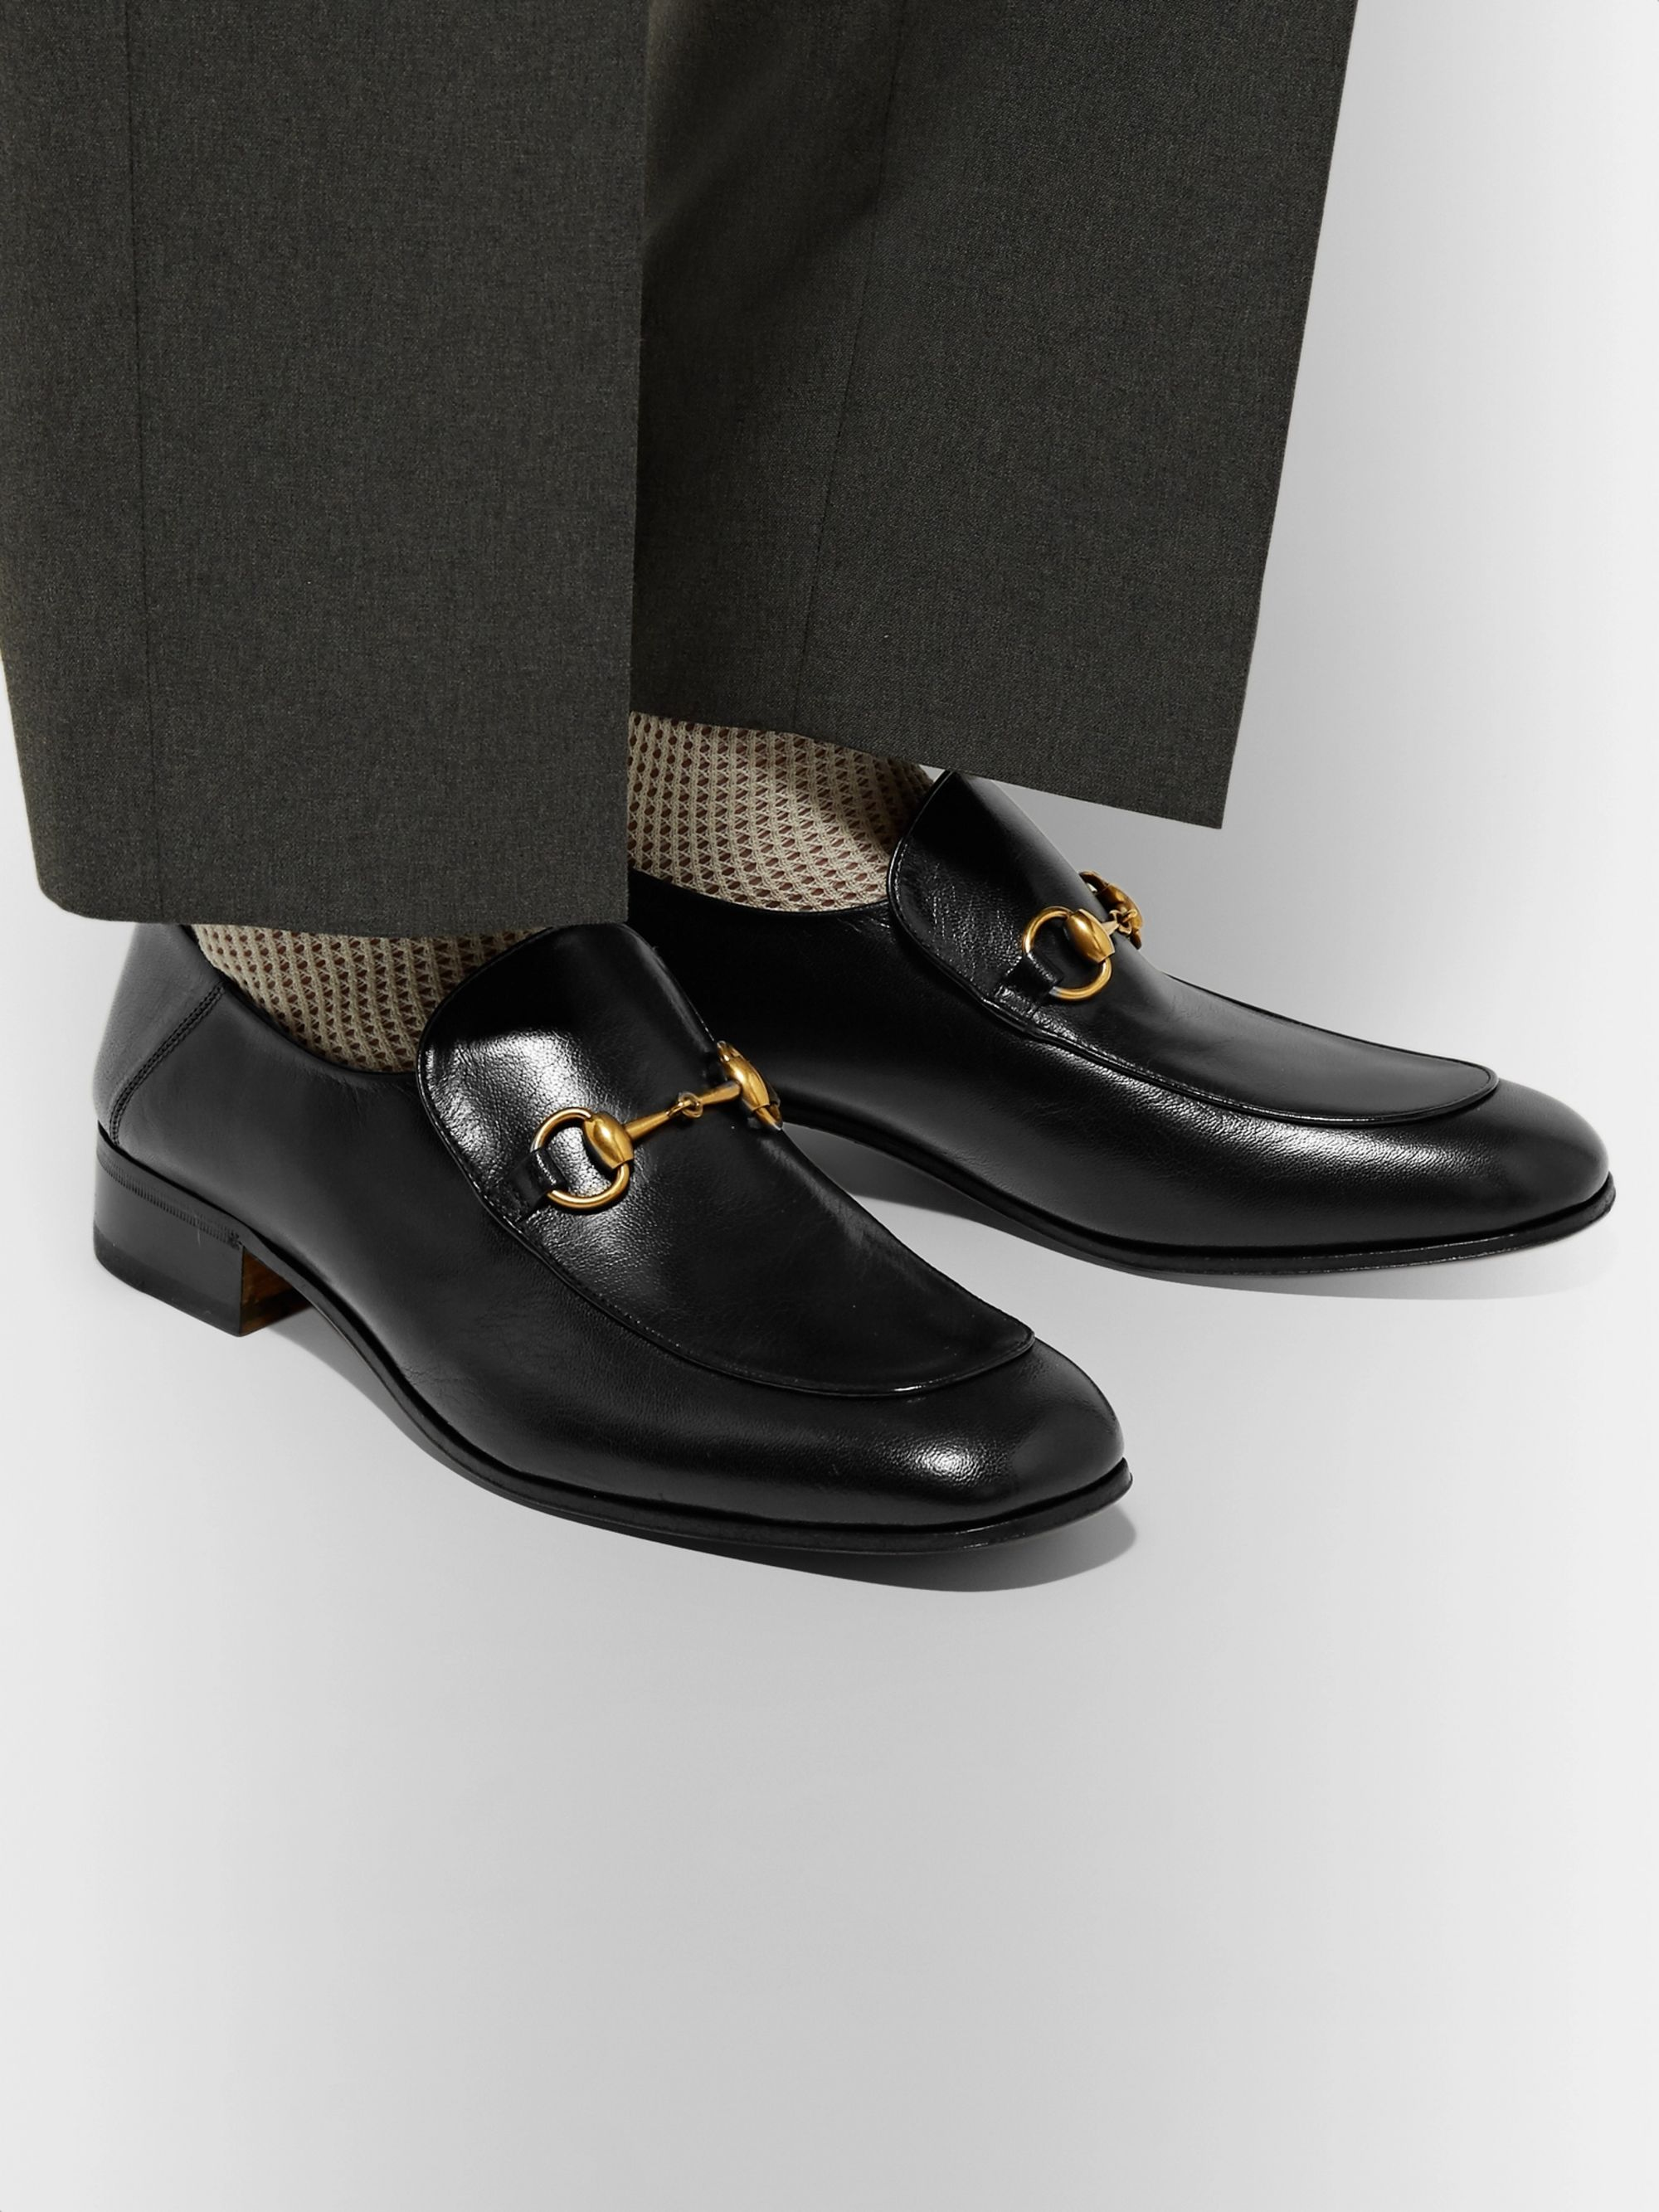 Gucci Mister Horsebit Collapsible-Heel Leather Loafers